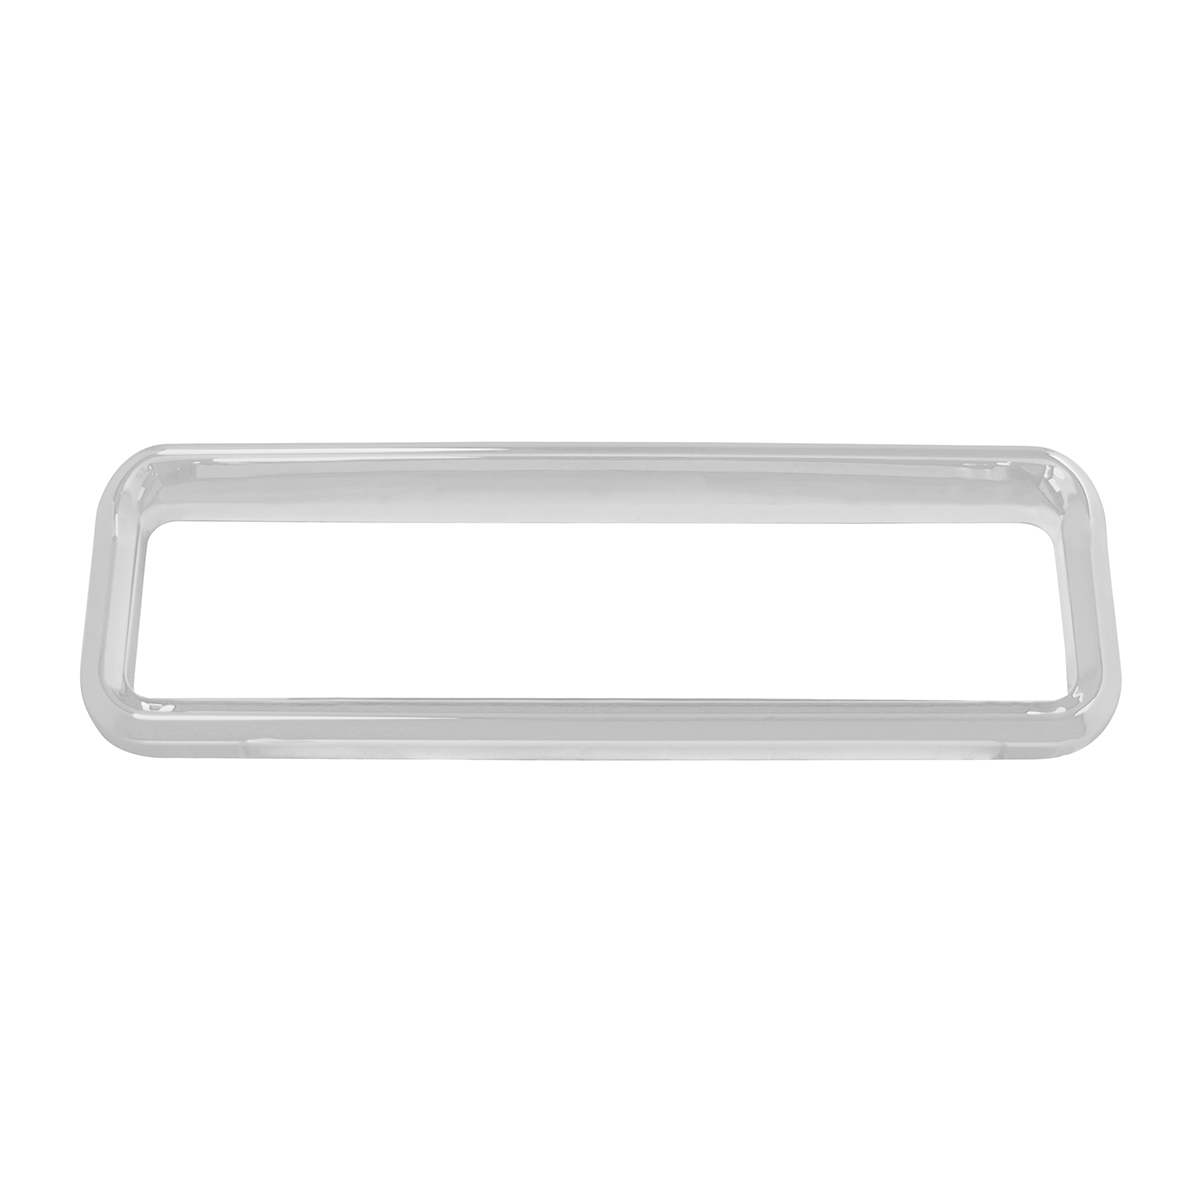 68727 Chrome Plastic Small Door Emblem Bezel for Freightliner